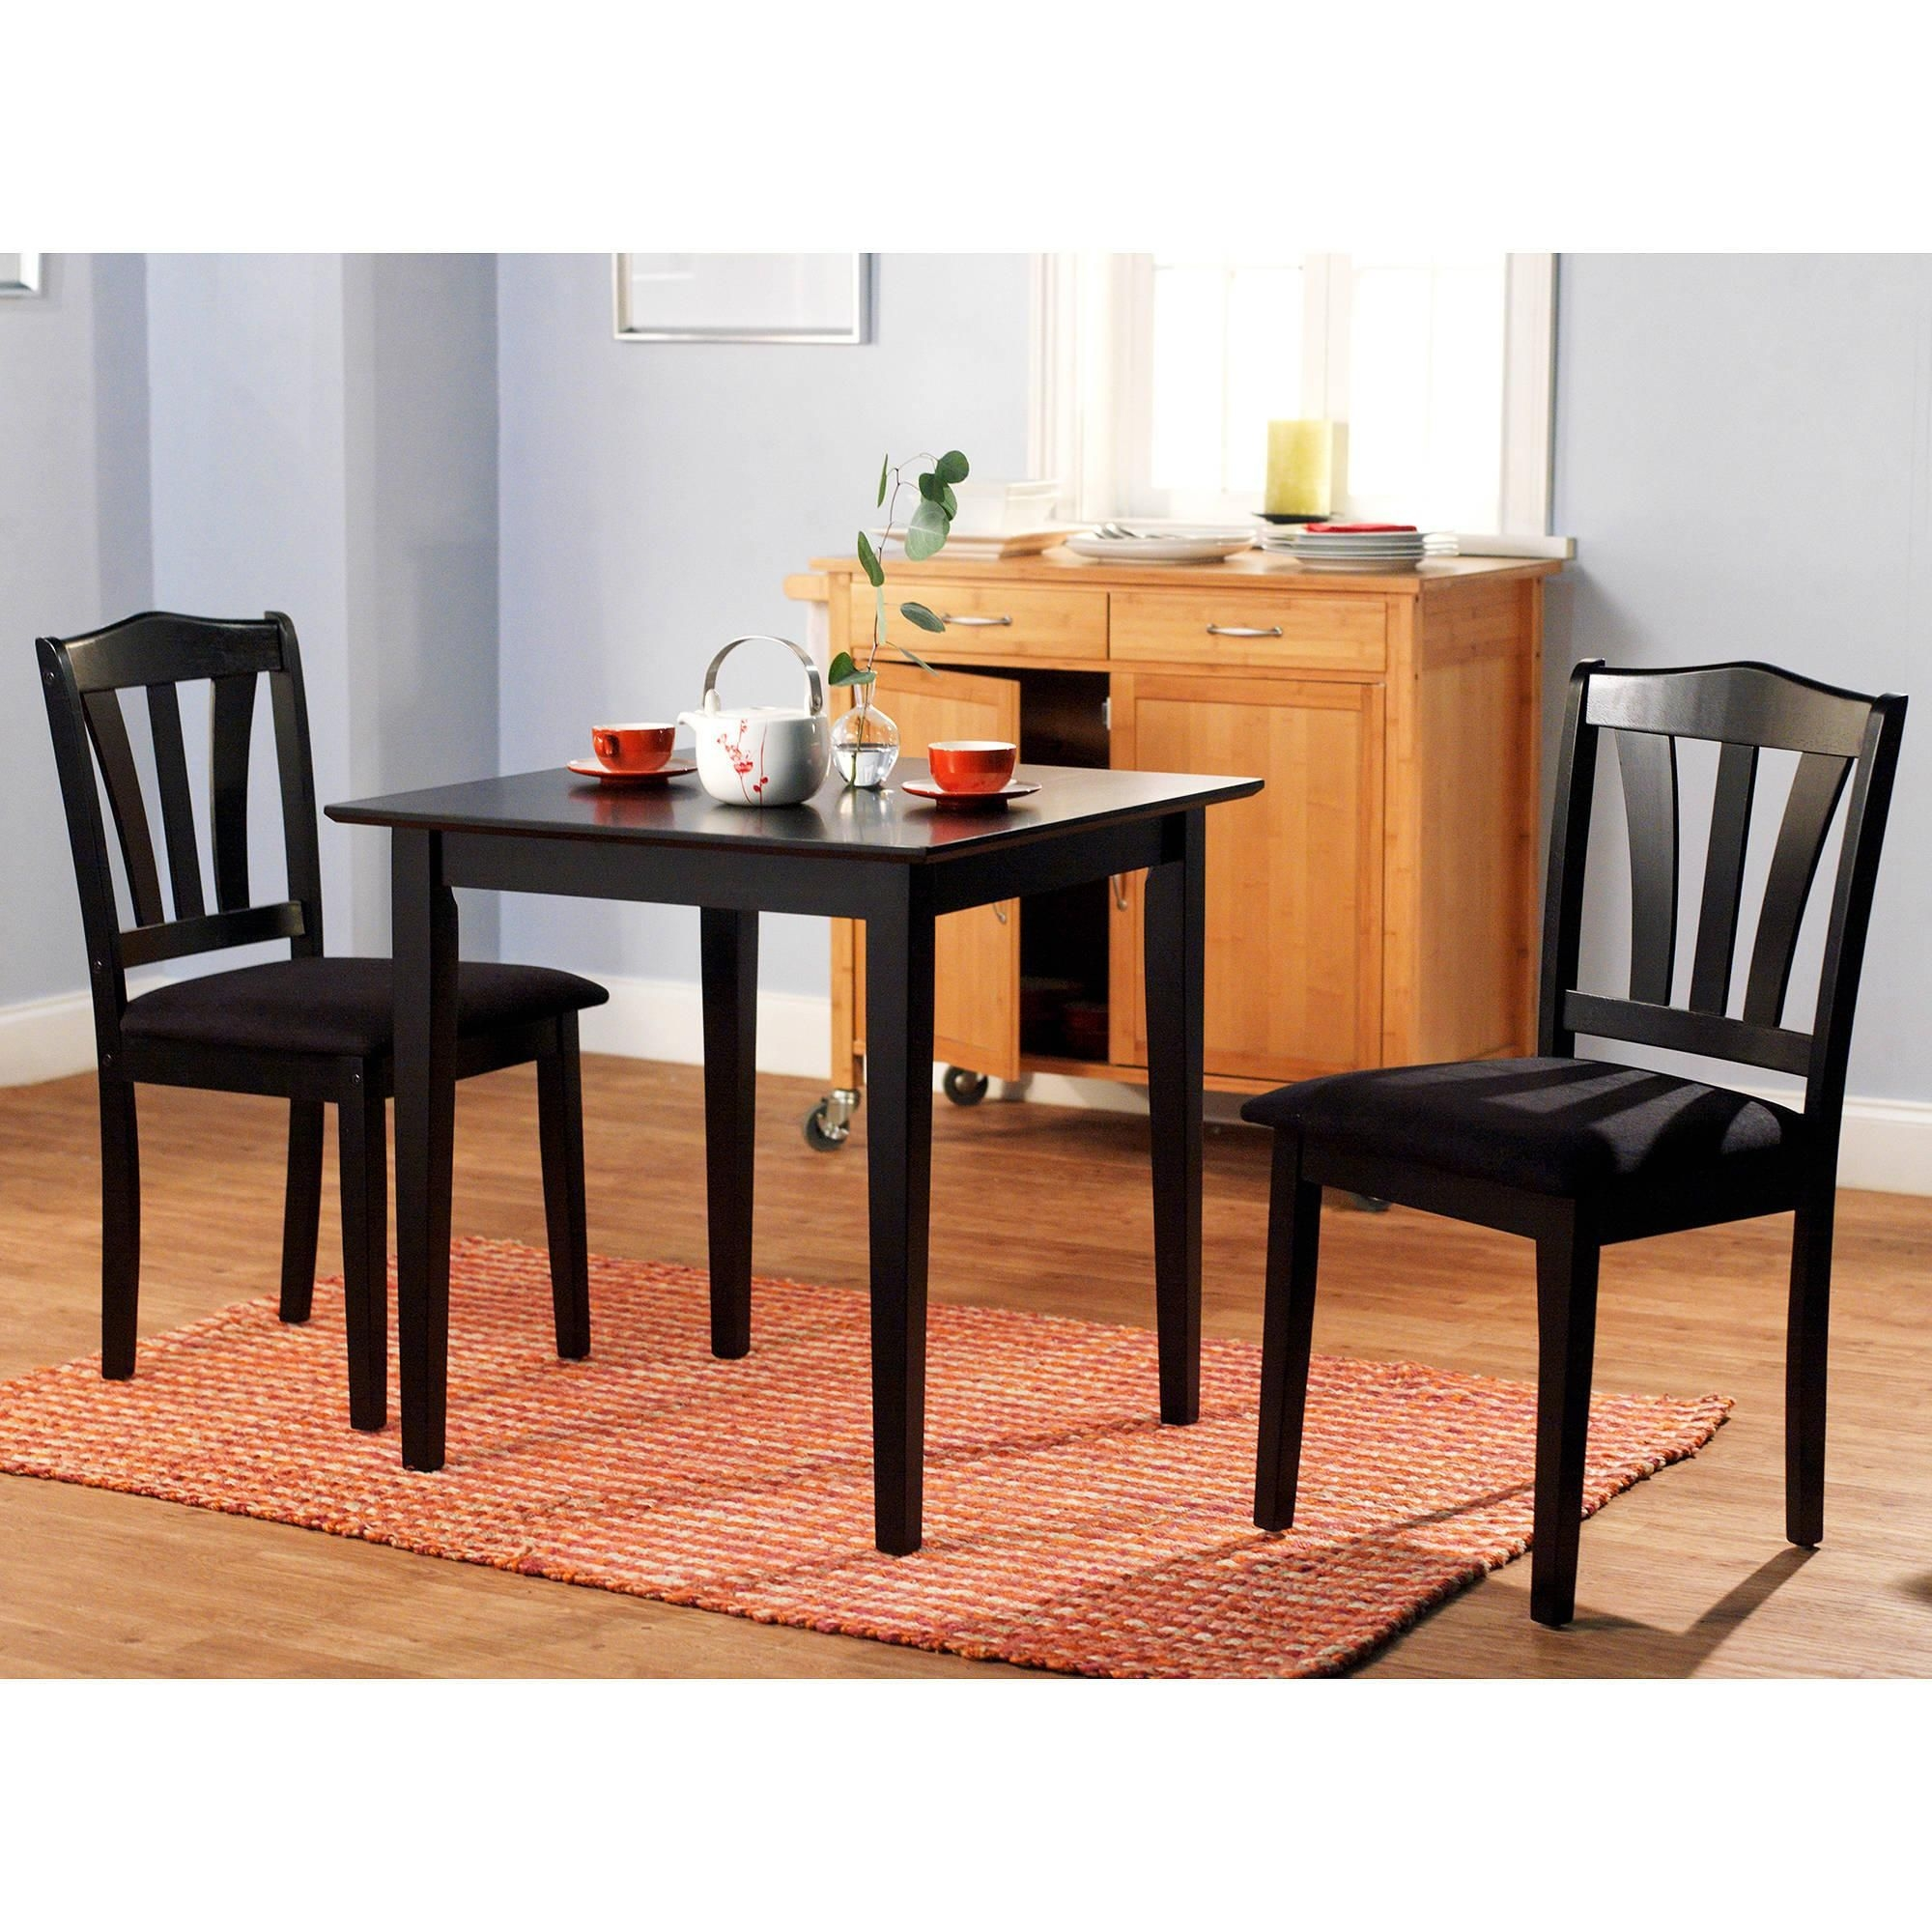 3 Piece Dining Set Table 2 Chairs Kitchen Room Wood Furniture Dinette Modern New 24319101029  Ebay